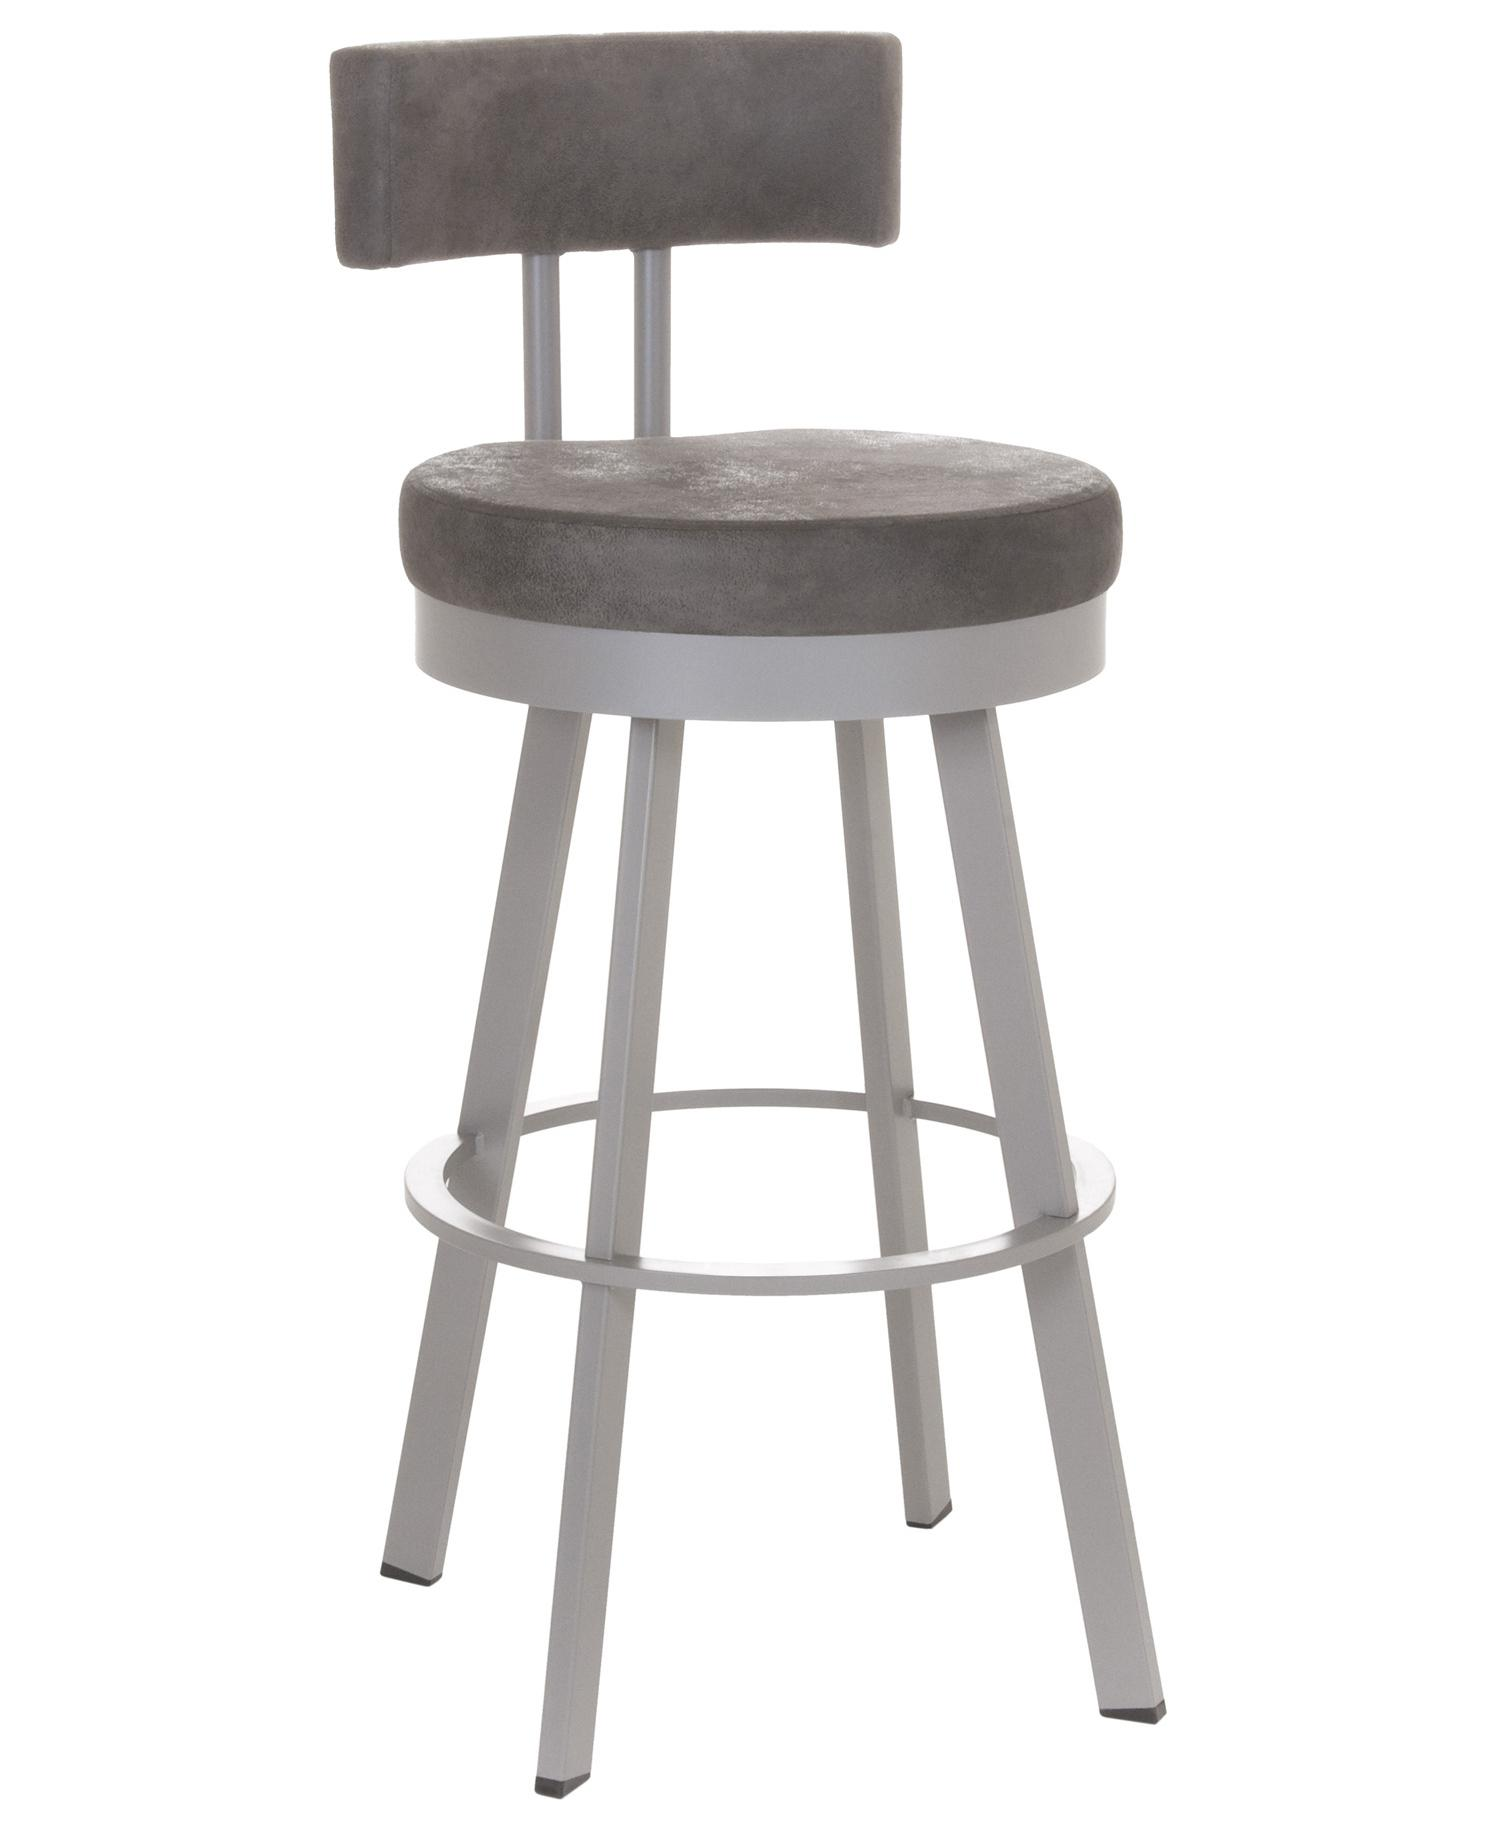 Urban Spectator Height Barry Swivel Stool by Amisco at Jordan's Home Furnishings